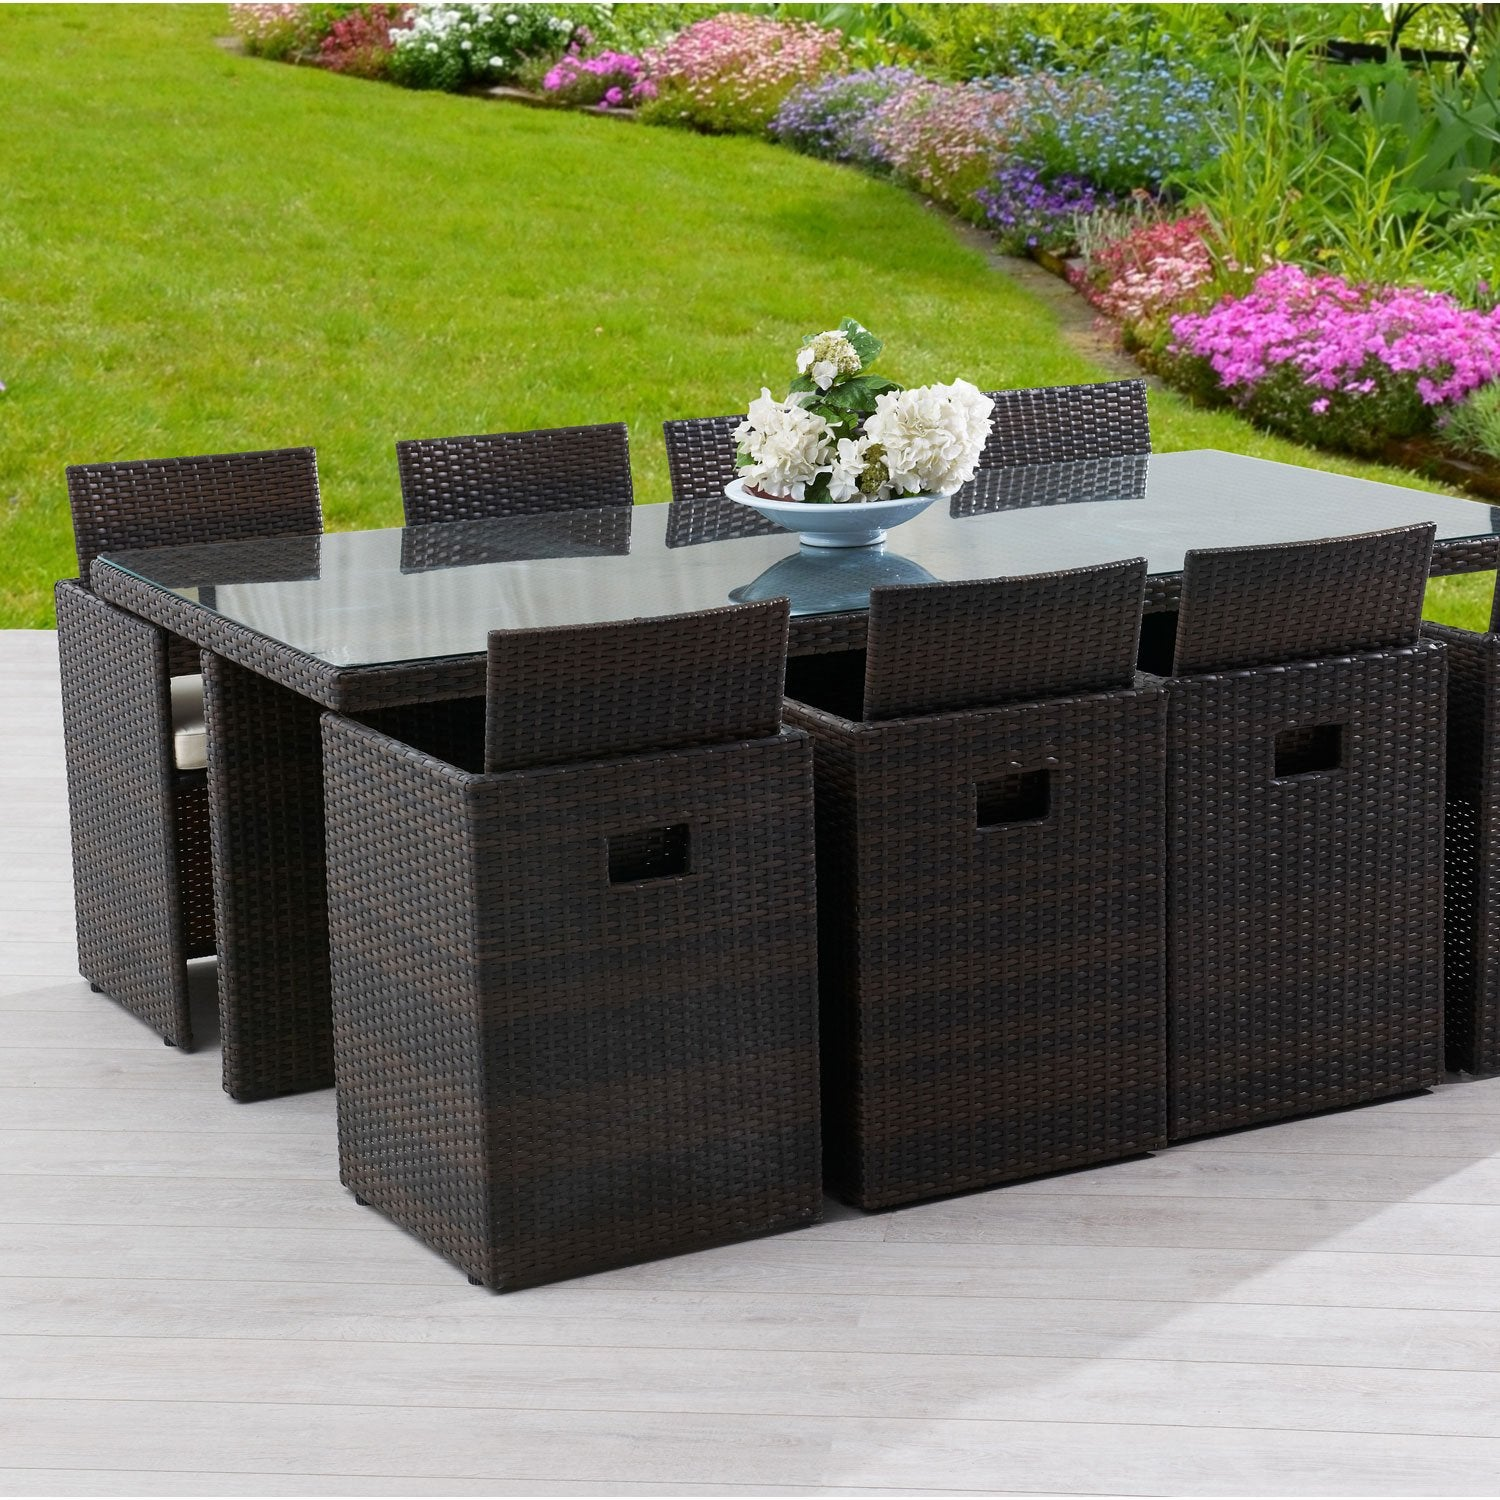 Salon de jardin encastrable r sine tress e marron 1 table for Mobilier exterieur resine